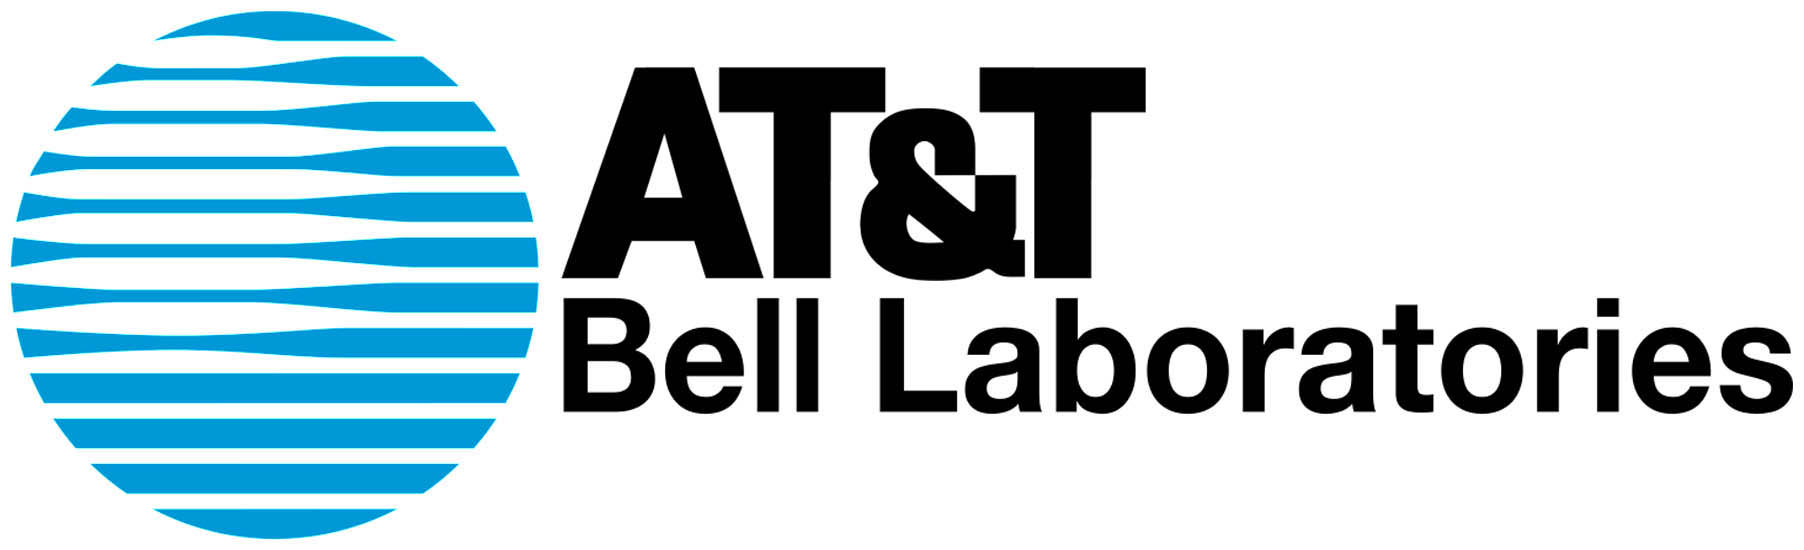 "AT&T Bell Labs - In my CONSPIRACY THEORY, AT&T Bell Laboratories gave me my DEFINE.COM domain in 1995 after I did the Second Coming at US WEST's Human Resources Headquarters in Phoenix, Arizona, after they had received some kind of hush hush call from the Department of the Navy that they overtly and intentionally made clear involved me personally. I was in a room by myself. People entered the room and said words out of context. It was like a head game on some kind of higher level. That time, she walked into the room, gave a big smile and enthusiastically said directed to me with direct eye contact, ""Department of the Navy."" I really fucked up that job in a highly visible way. They intentionally got me excited by saying exciting things with no context. Quantum physics. The Whole Thing. Think BIG. I had a total meltdown. I really fucked up that job in a highly visible way. I dissociated and starting talking like a little kid. I jumped up and down and starting talking about dolphin signature whistles as being like the internet protocol. Then, in a voice that sounded like an enthusiastic and excited little kid, I said, ""You know Revelations, the Second Coming and all that jazz? That's me!"" Then I heard a squirting, hissing noise in my brain and I got all tingly first on my left side, then on my right side, particularly on my scalp. Then my manager let me go. The last thing he said to me was, ""That would be illegal. Sometimes you have to make things worse in order to make things better. Pagan. Be careful what you wish for. It's about VALUES. YOU WILL be rewarded. My advice to you is to lay back and enjoy the show. Don't call us. We'll call you.""  I made this logo by combining the AT&T and Bell Laboratories Logos for different periods. It's not an exact match, but it still looks good in full screen. This is a COUNTERFEIT AT&T Bell Laboratories logo. They have intentionally kept their large logos out of the marketplace and search engines."